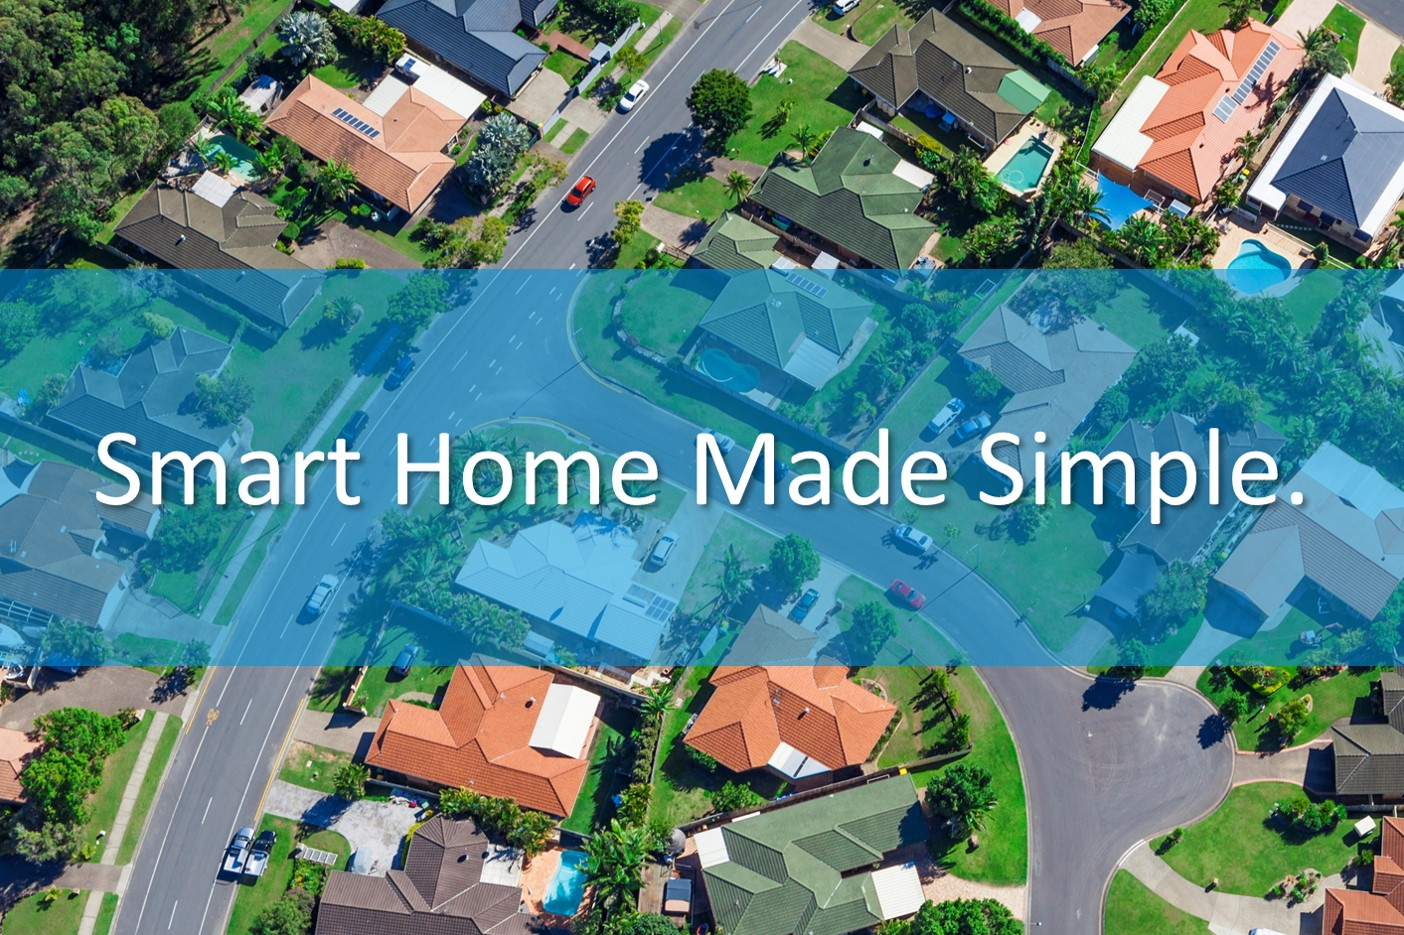 Top 5 Ways to Succeed with Smart Home